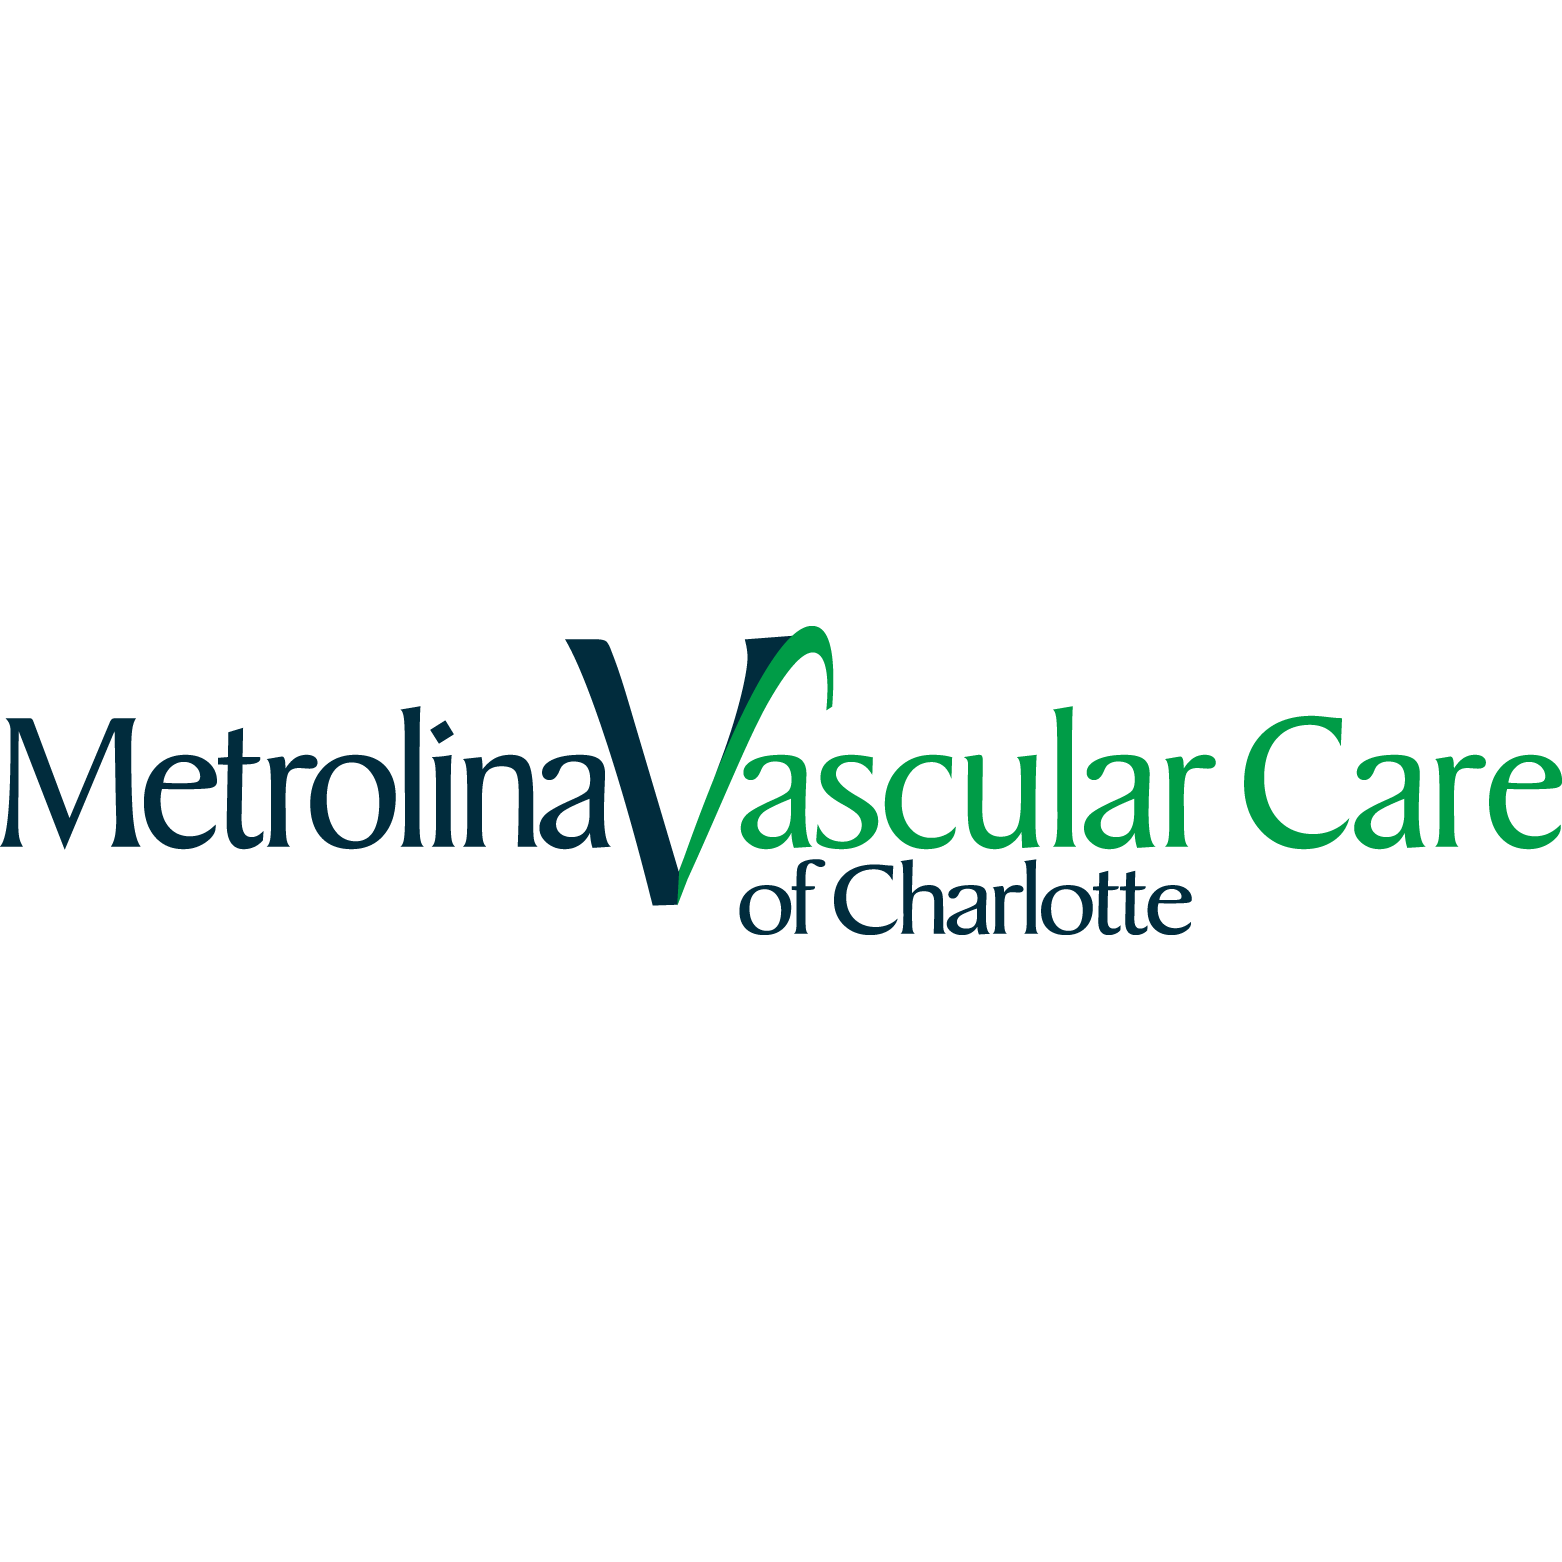 Metrolina Vascular Care of Charlotte